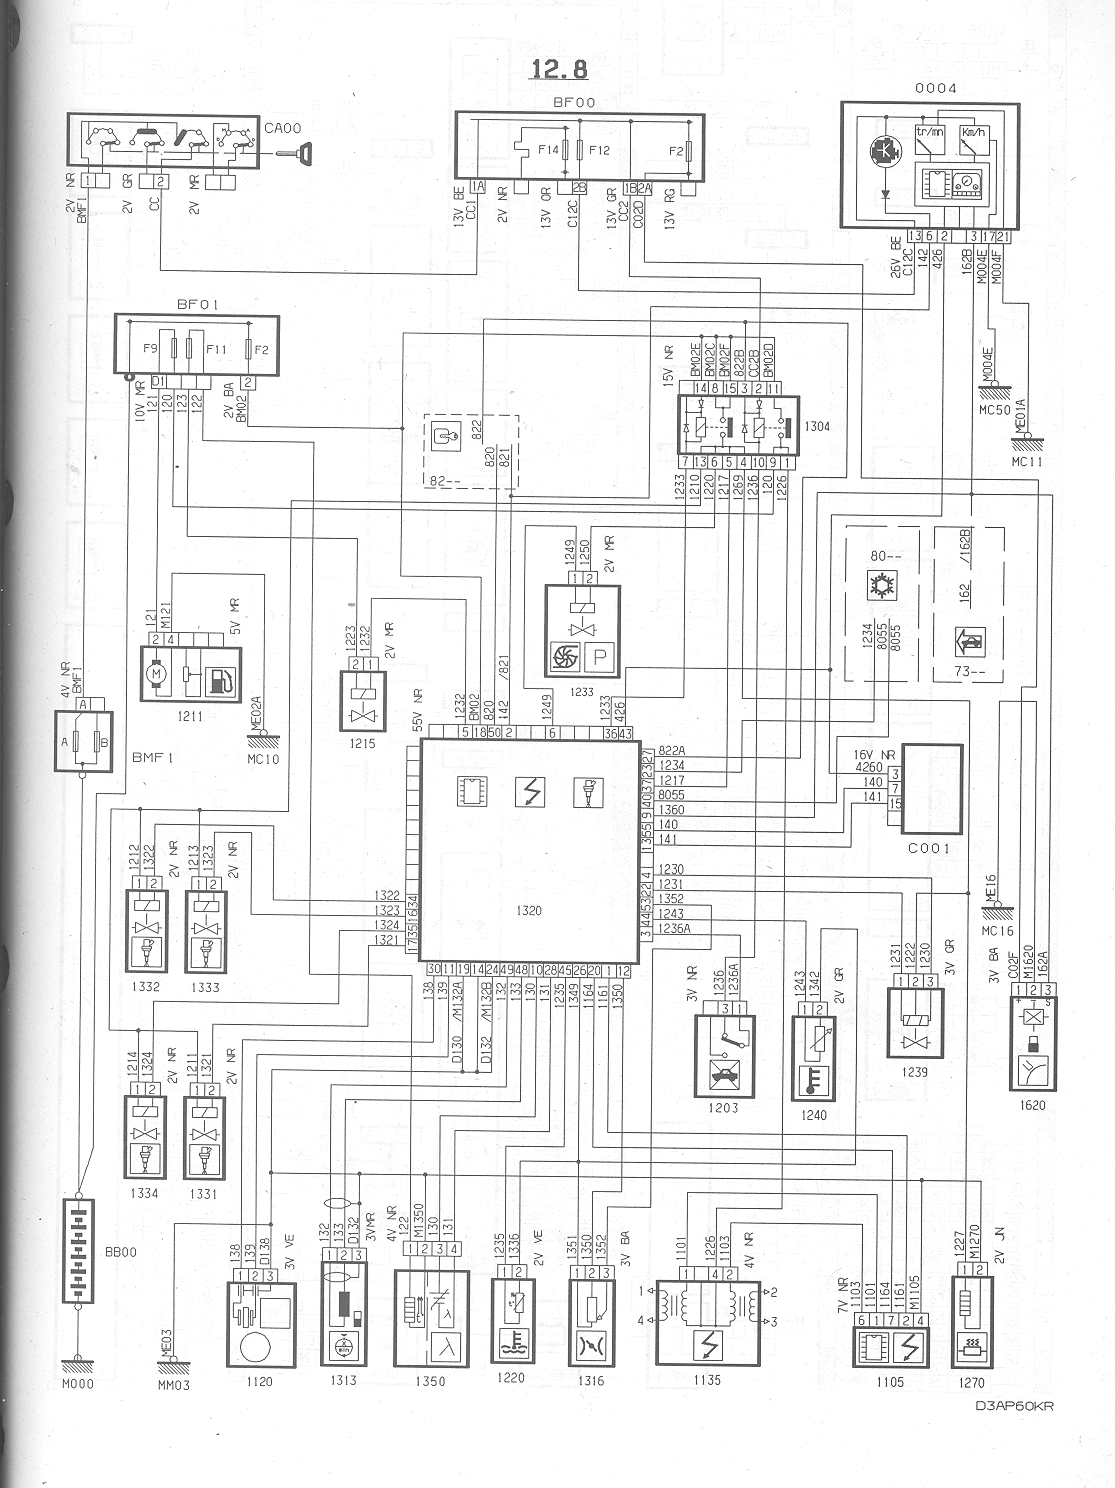 Citroen Ax Wiring Diagram 25 Images Xantia Ecu Mk2rgxinjcct 2cv Diagrams Instruction At Cita